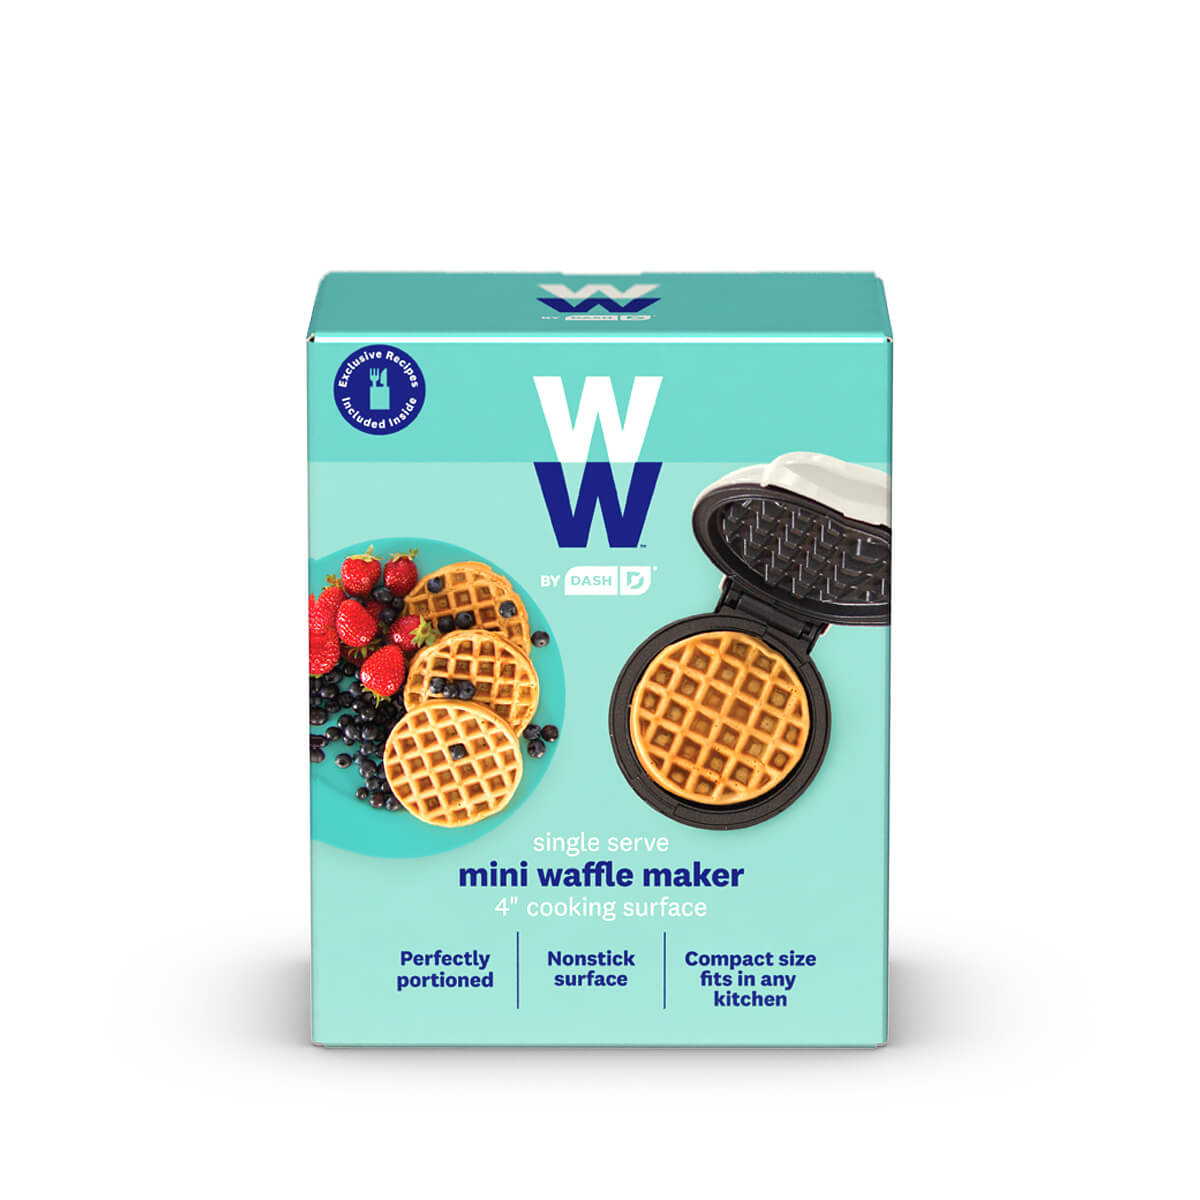 WW by Dash Mini Waffle Maker - front